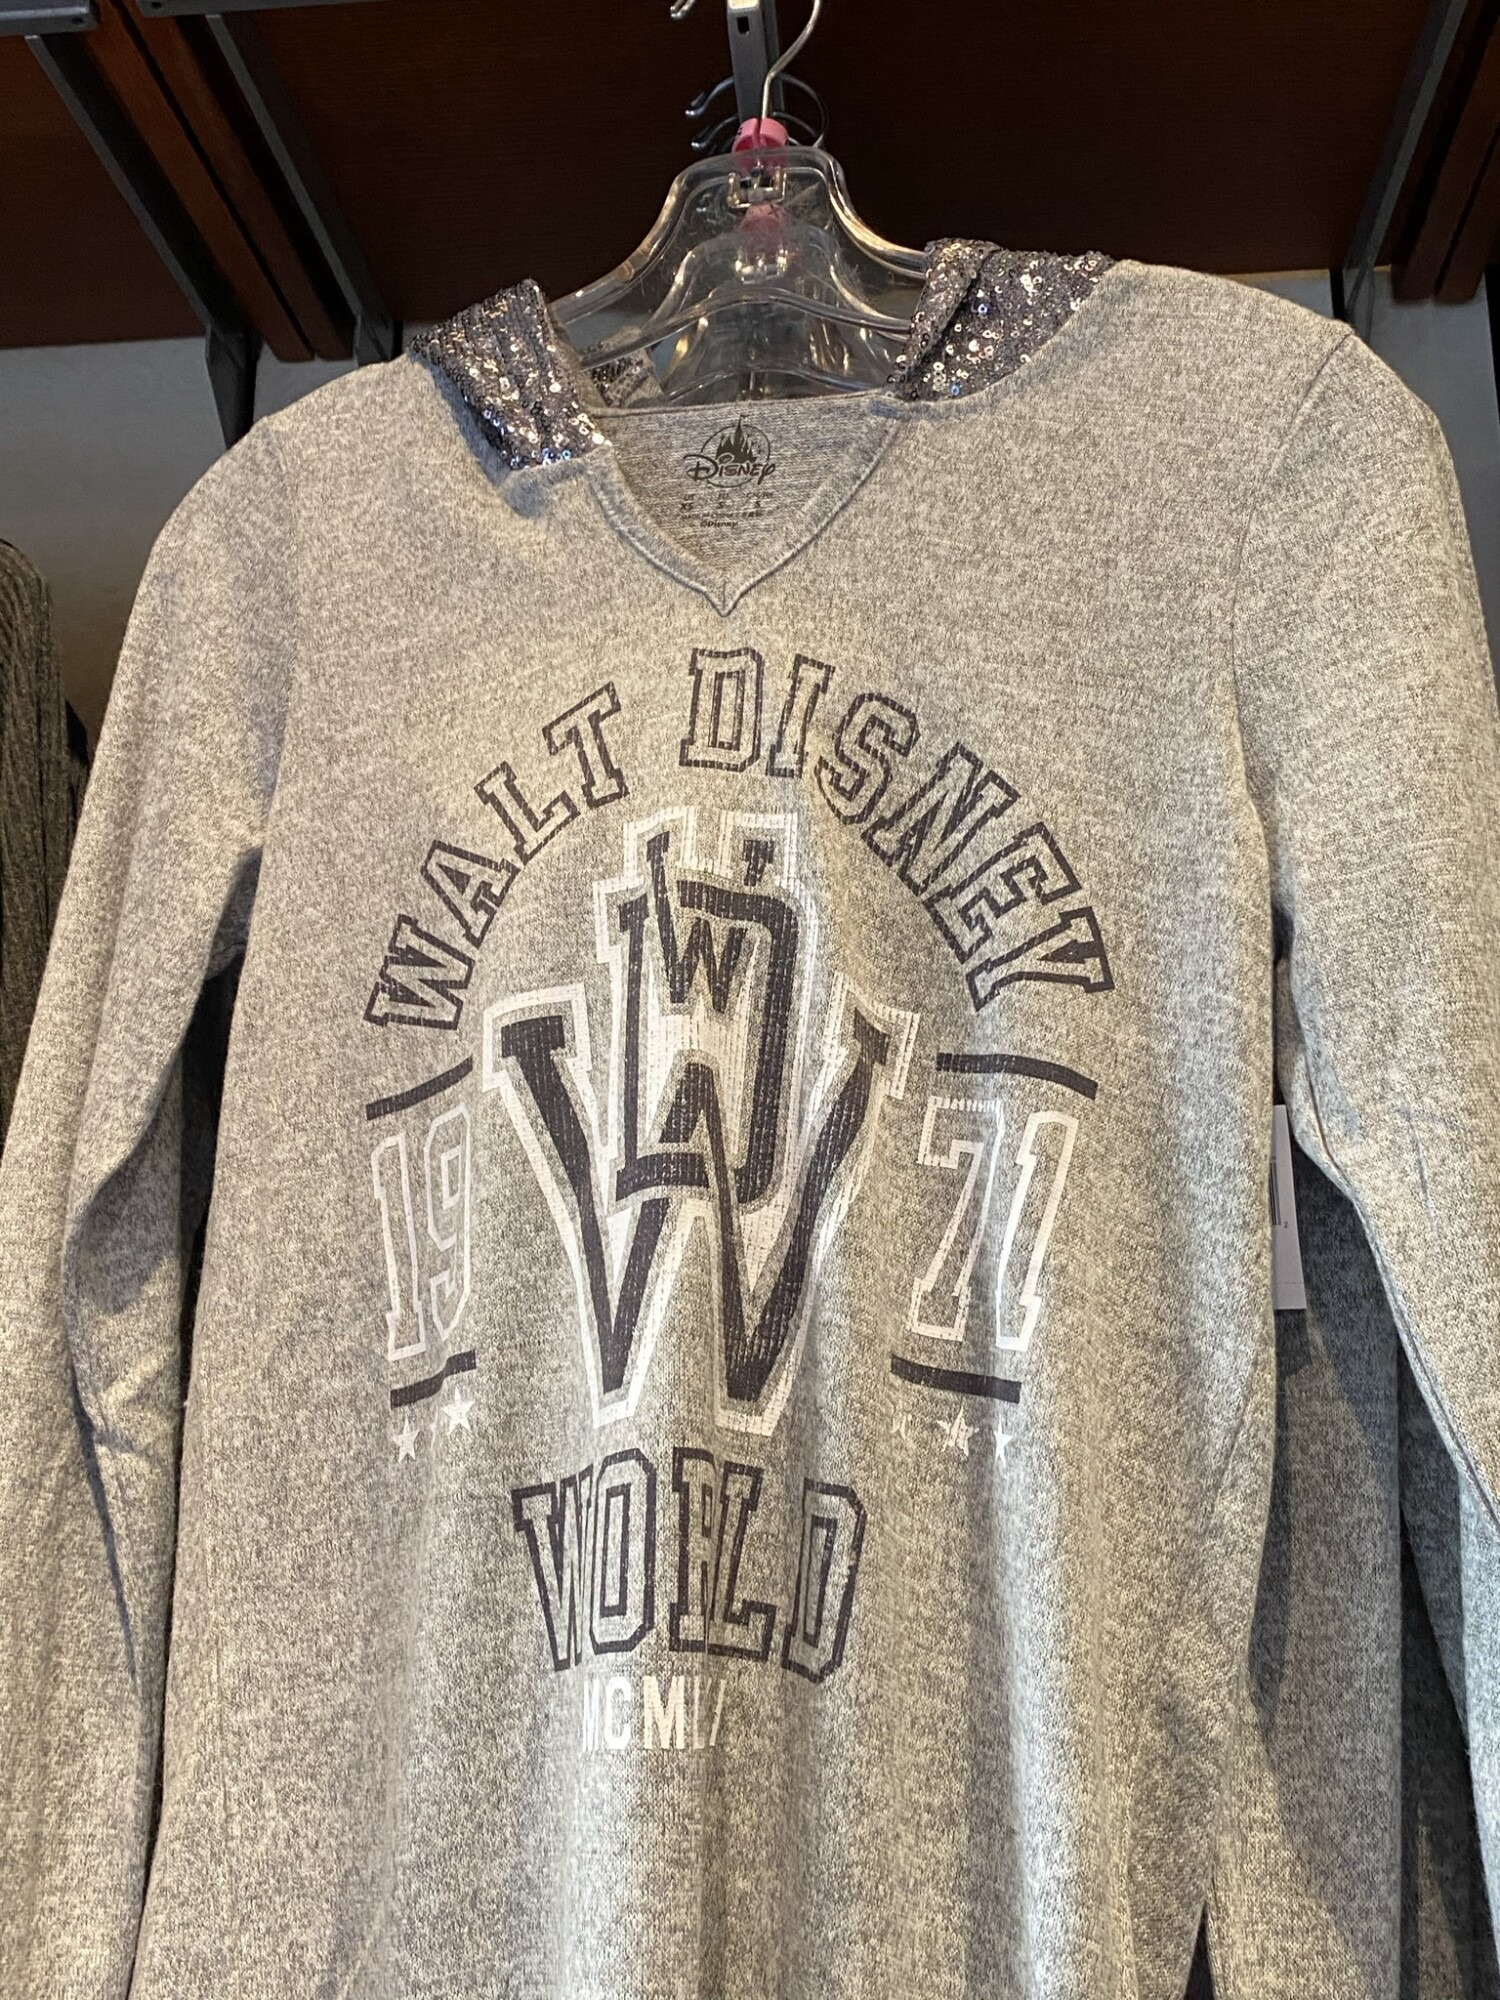 New Sparkly Silver Apparel at Hollywood Studios! 4